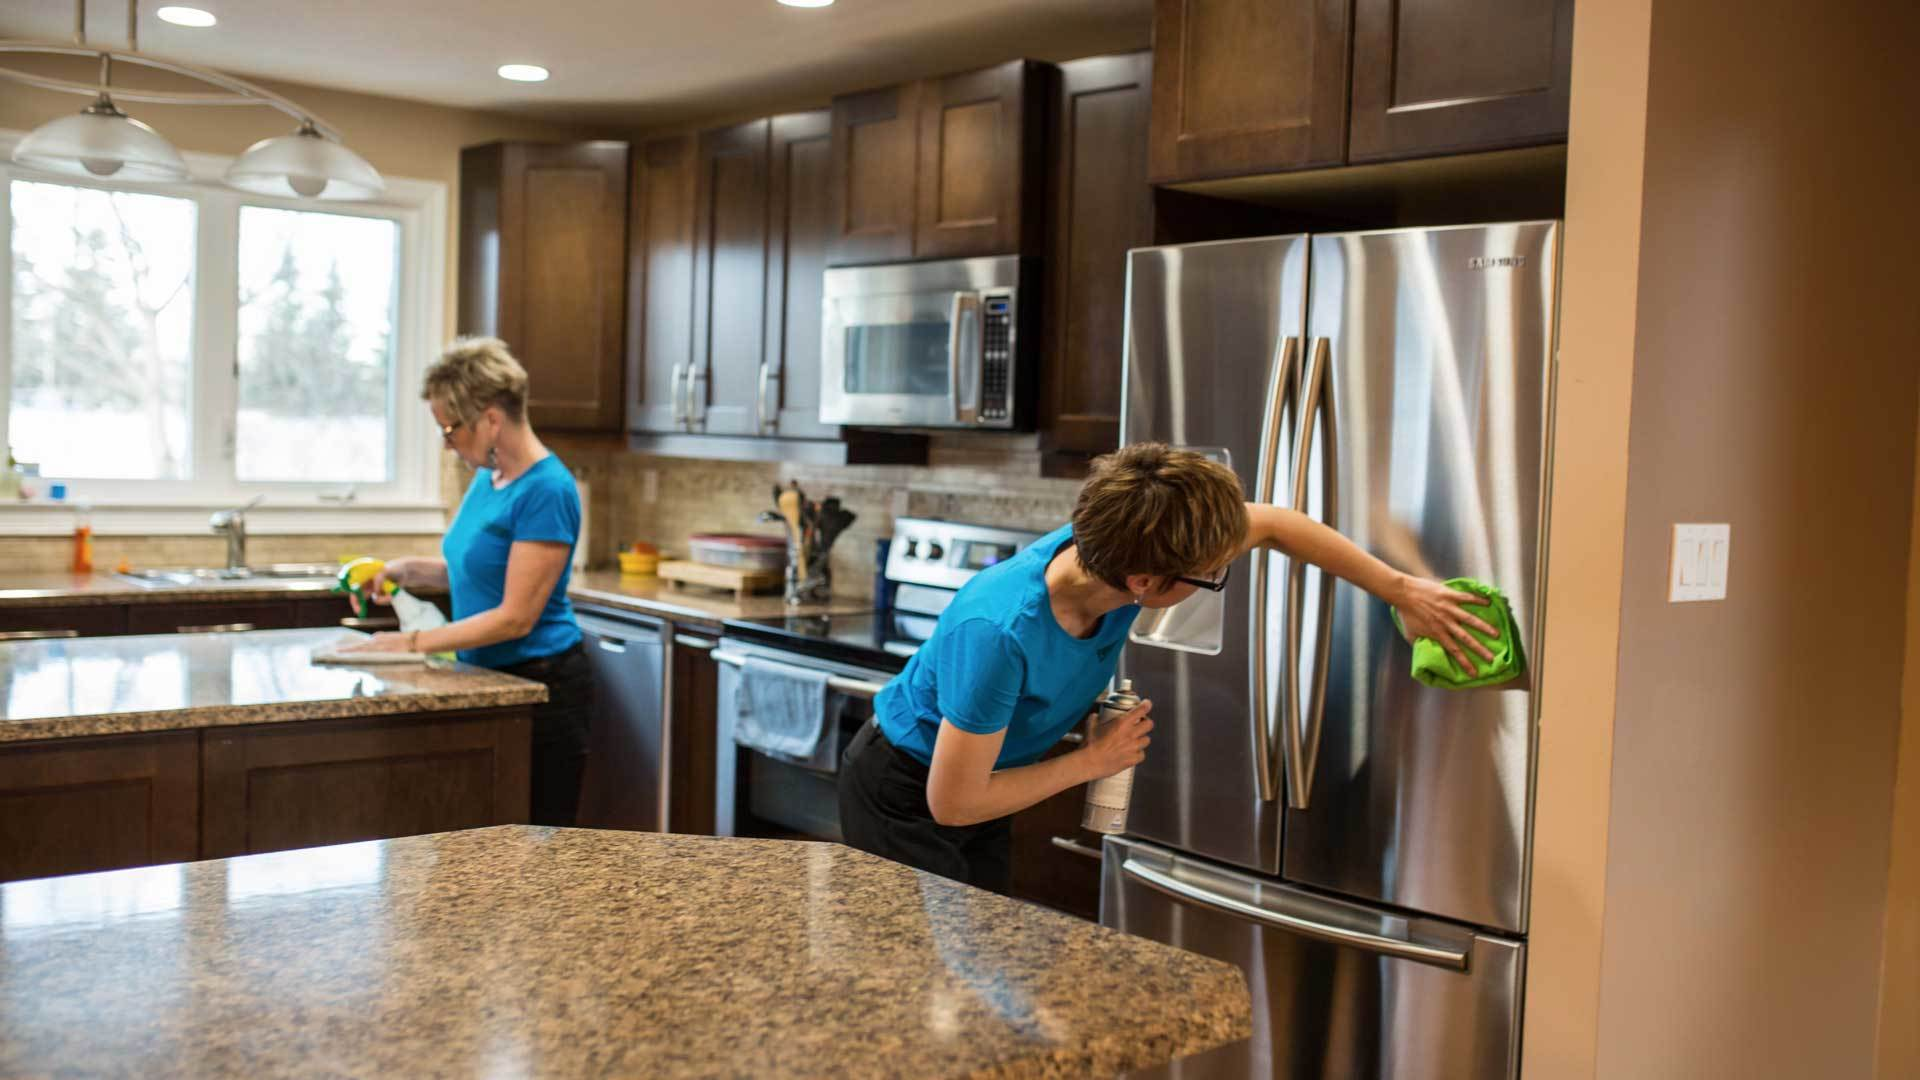 Hiring-Residential-Cleaning-Services-on-99Insight